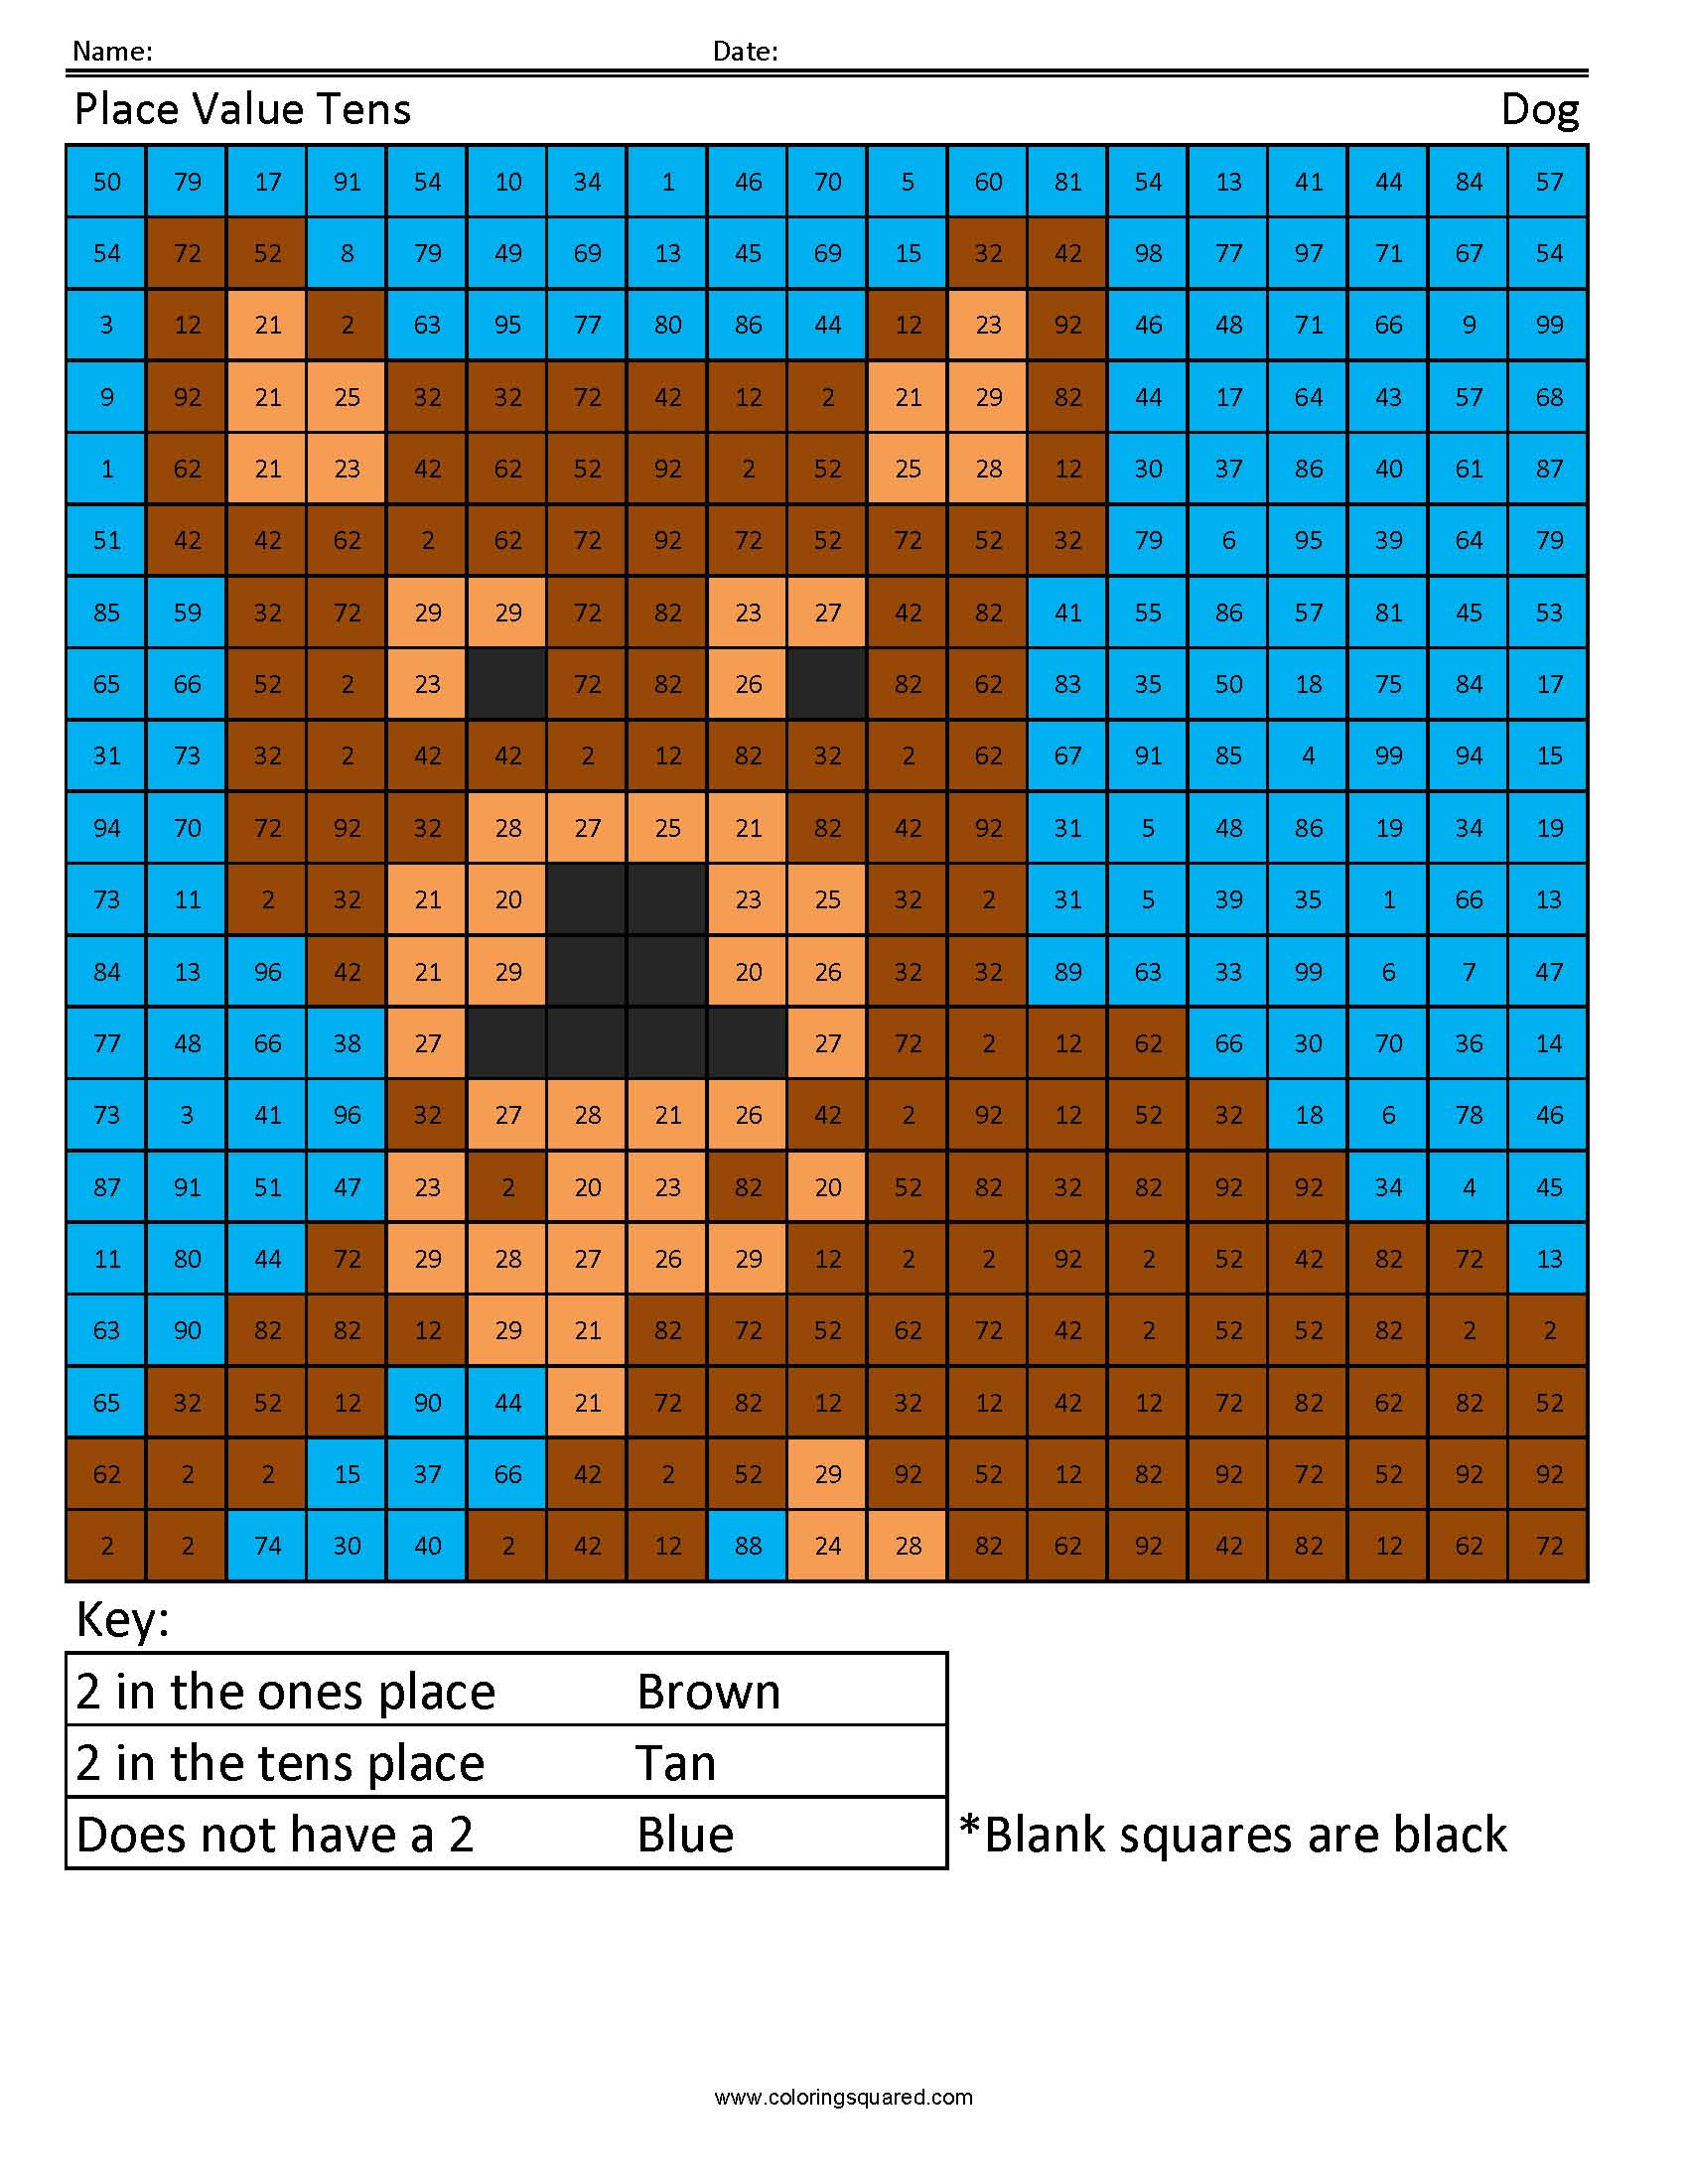 1g27 Place Value Tens Dog First Grade Math